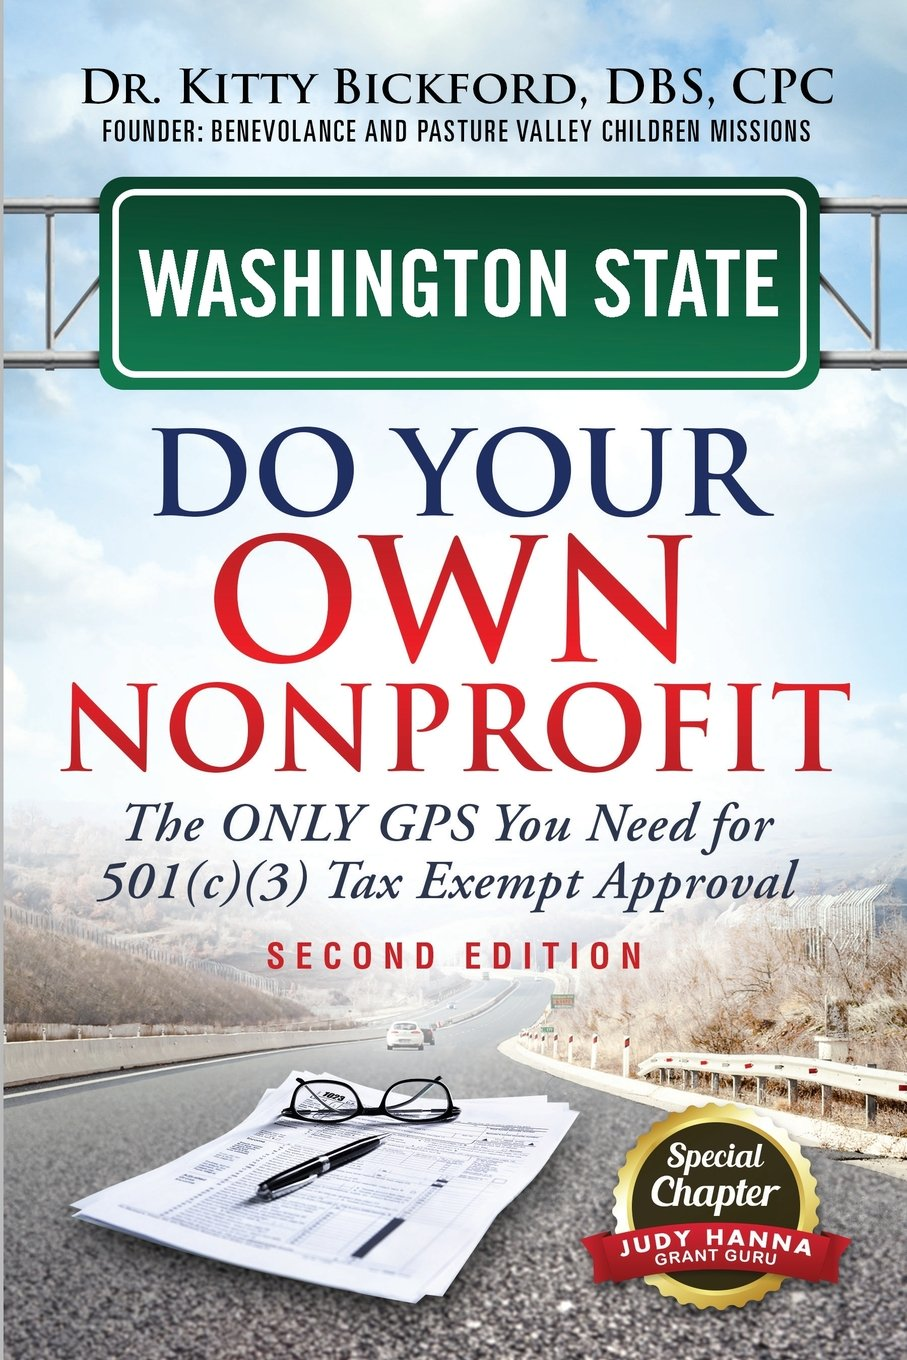 Washington State Do Your Own Nonprofit: The Only GPS You Need For 501c3 Tax Exempt Approval